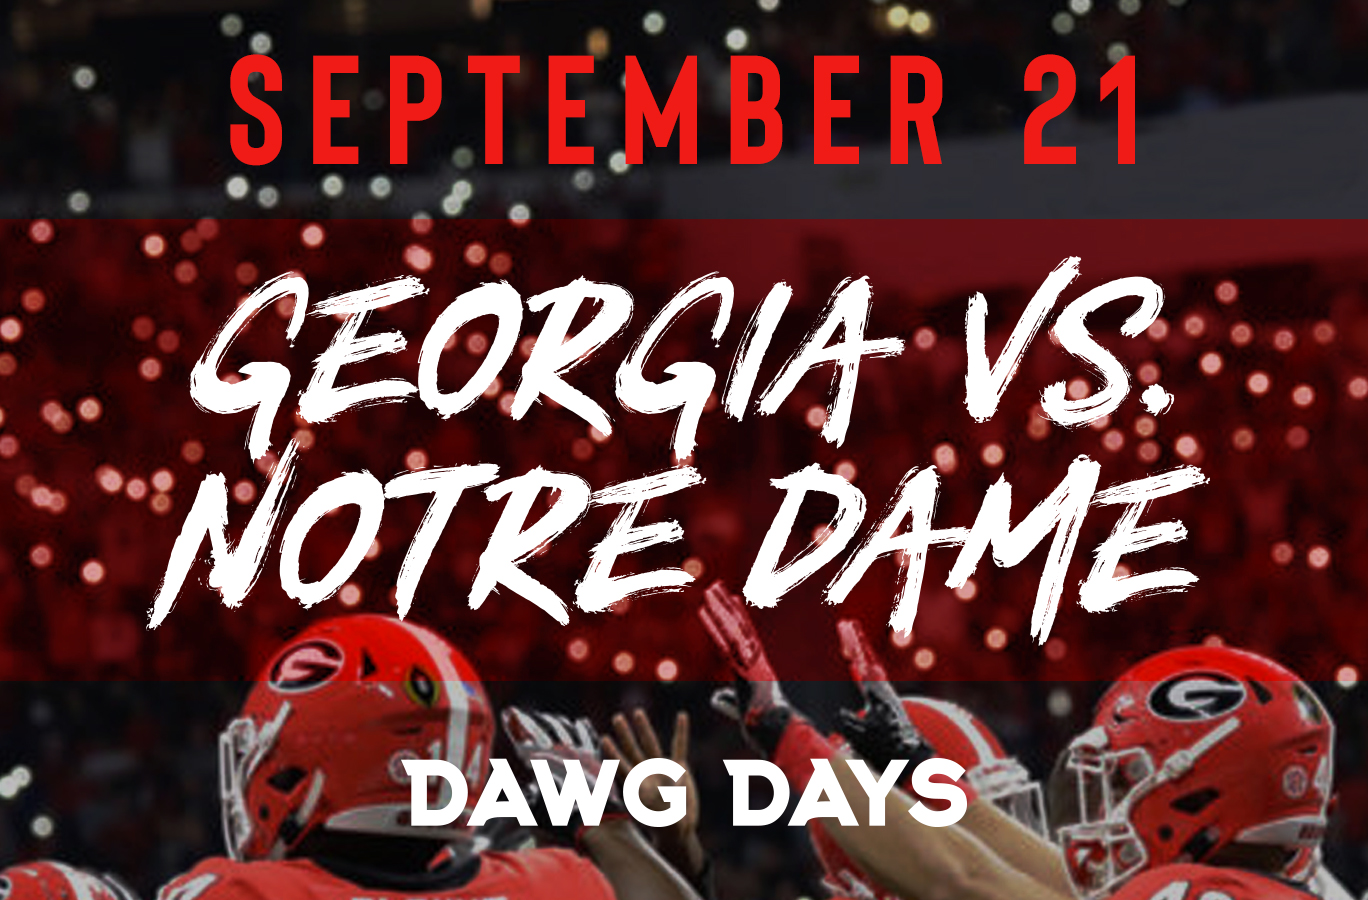 Tickets for Georgia vs Notre Dame | 9 21 19 | Athens, GA in